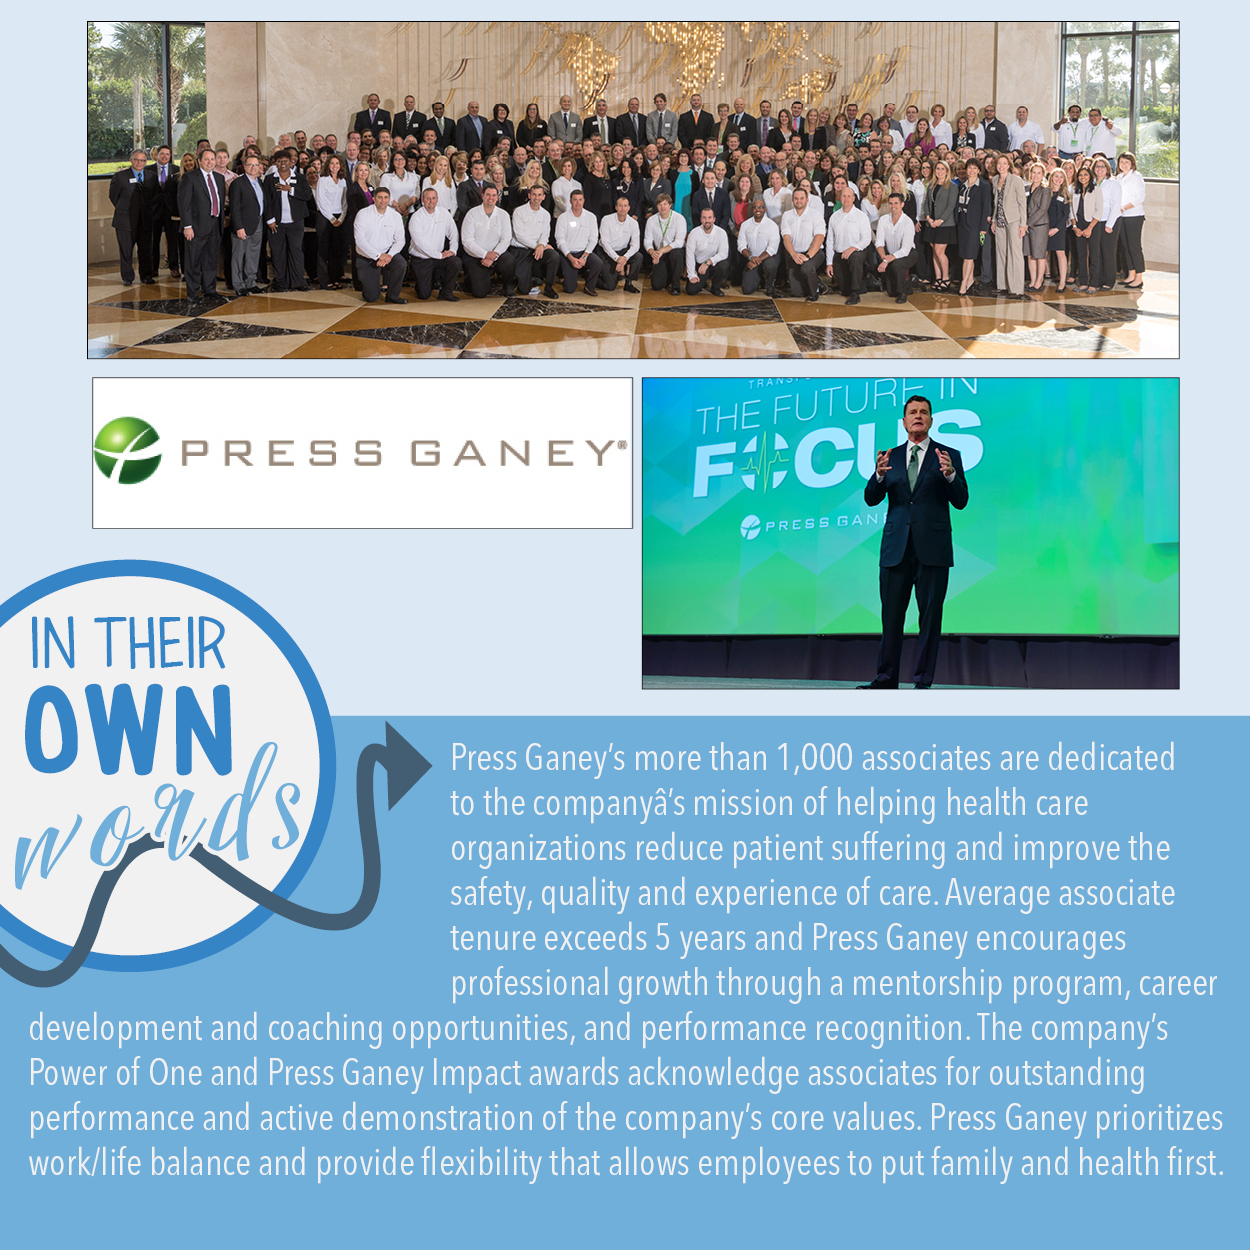 pressganey-gptw